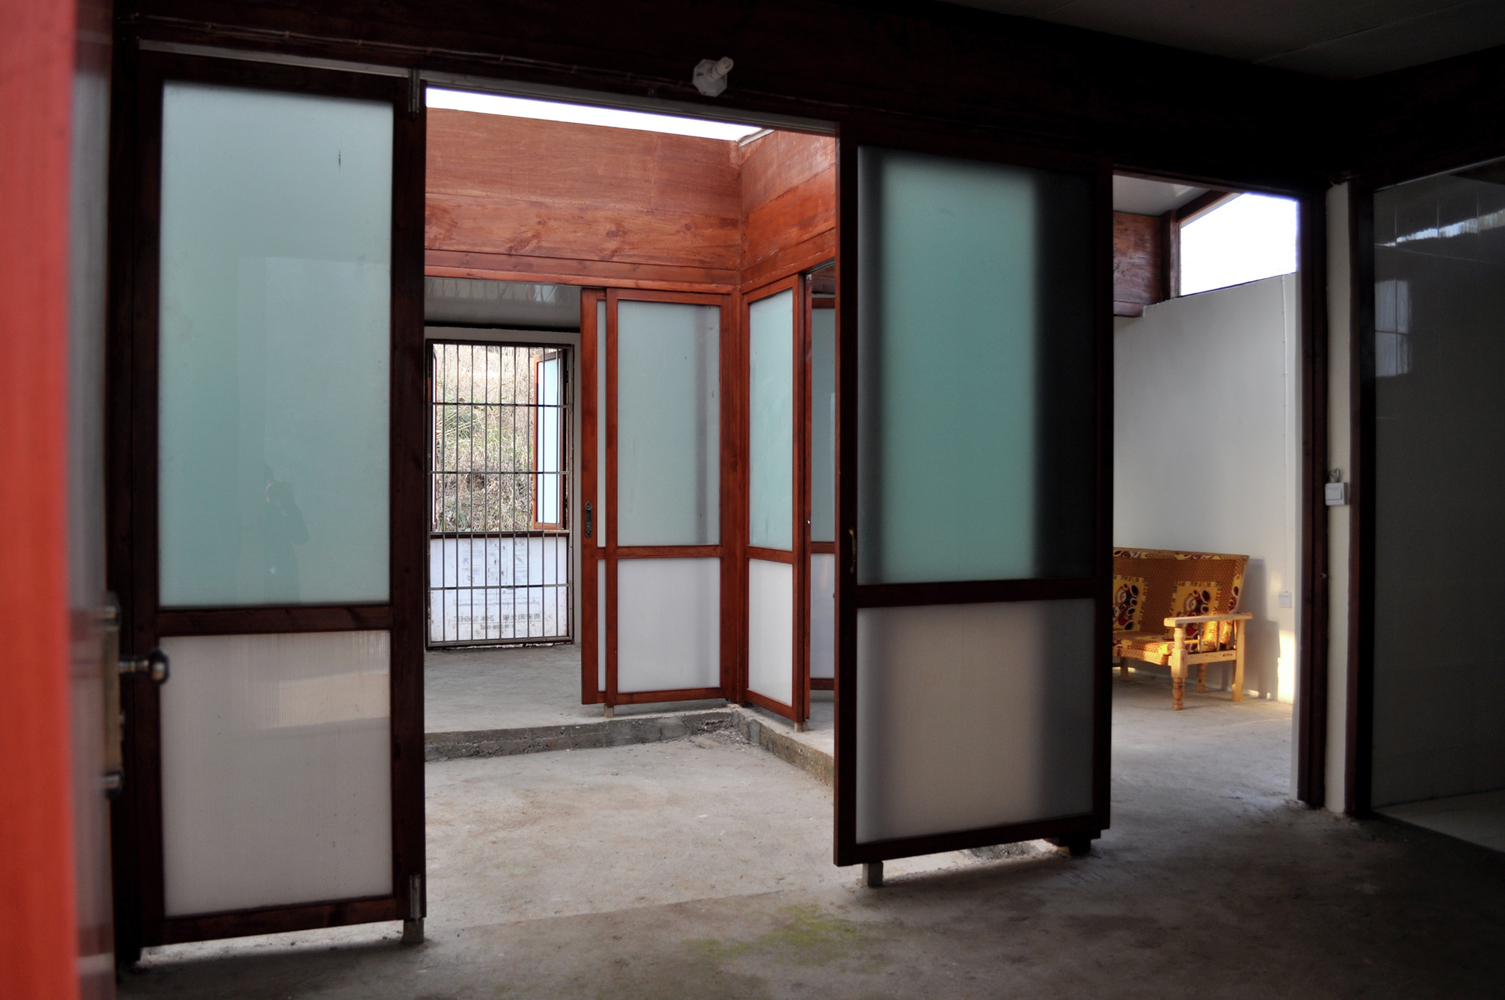 gallery of 1k house - pinwheel house / ying chee chui - 11